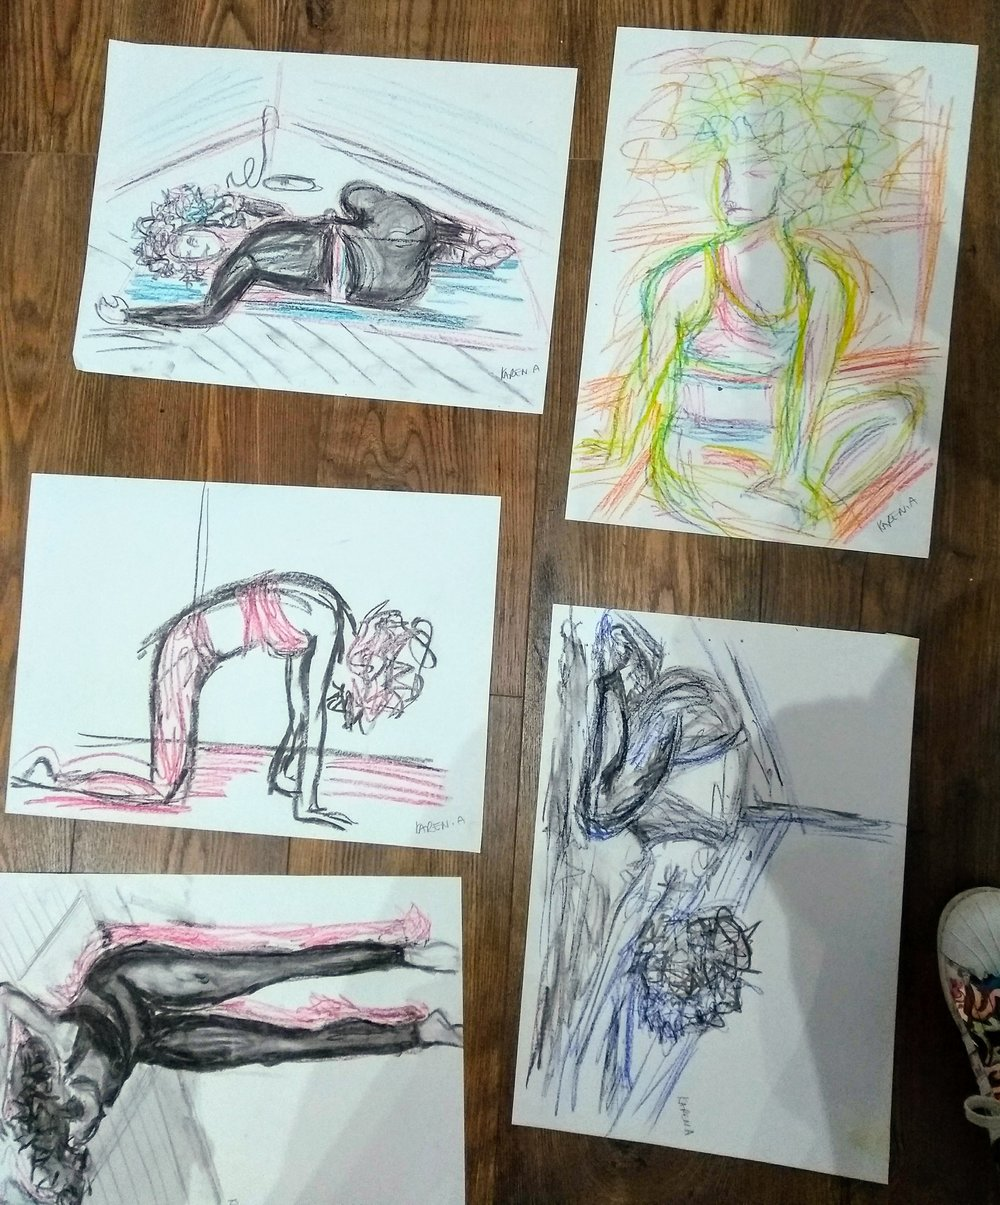 Having not participated in an art class since my teens I took part in a live yoga drawing session with Artist Kim Myers and bendy yoga icon Sanchia Legister. Highly recommend. More please! October 2018.